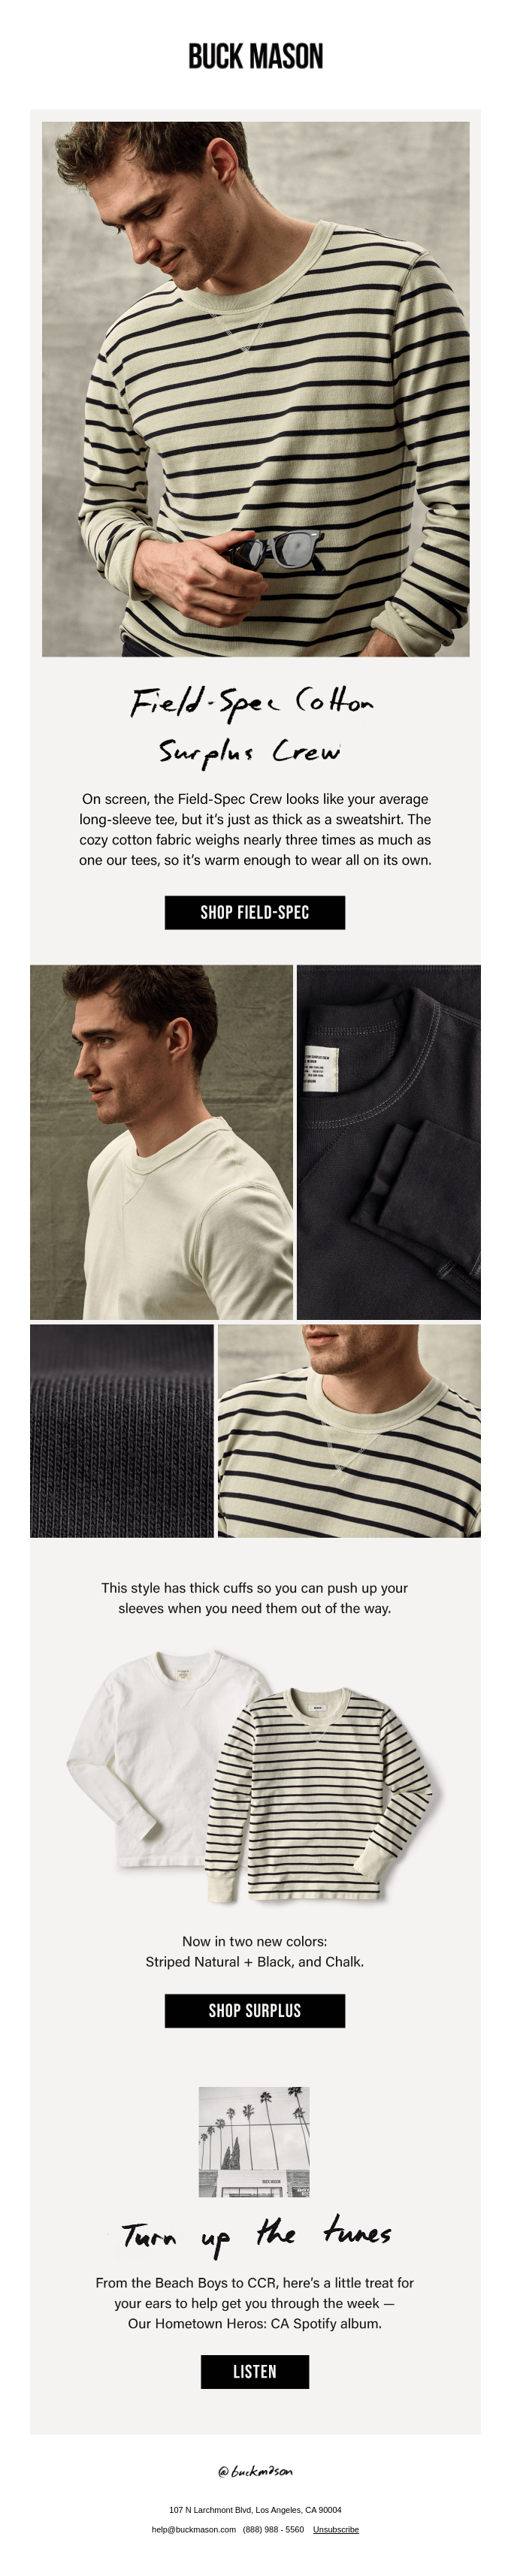 New Solids and Stripes